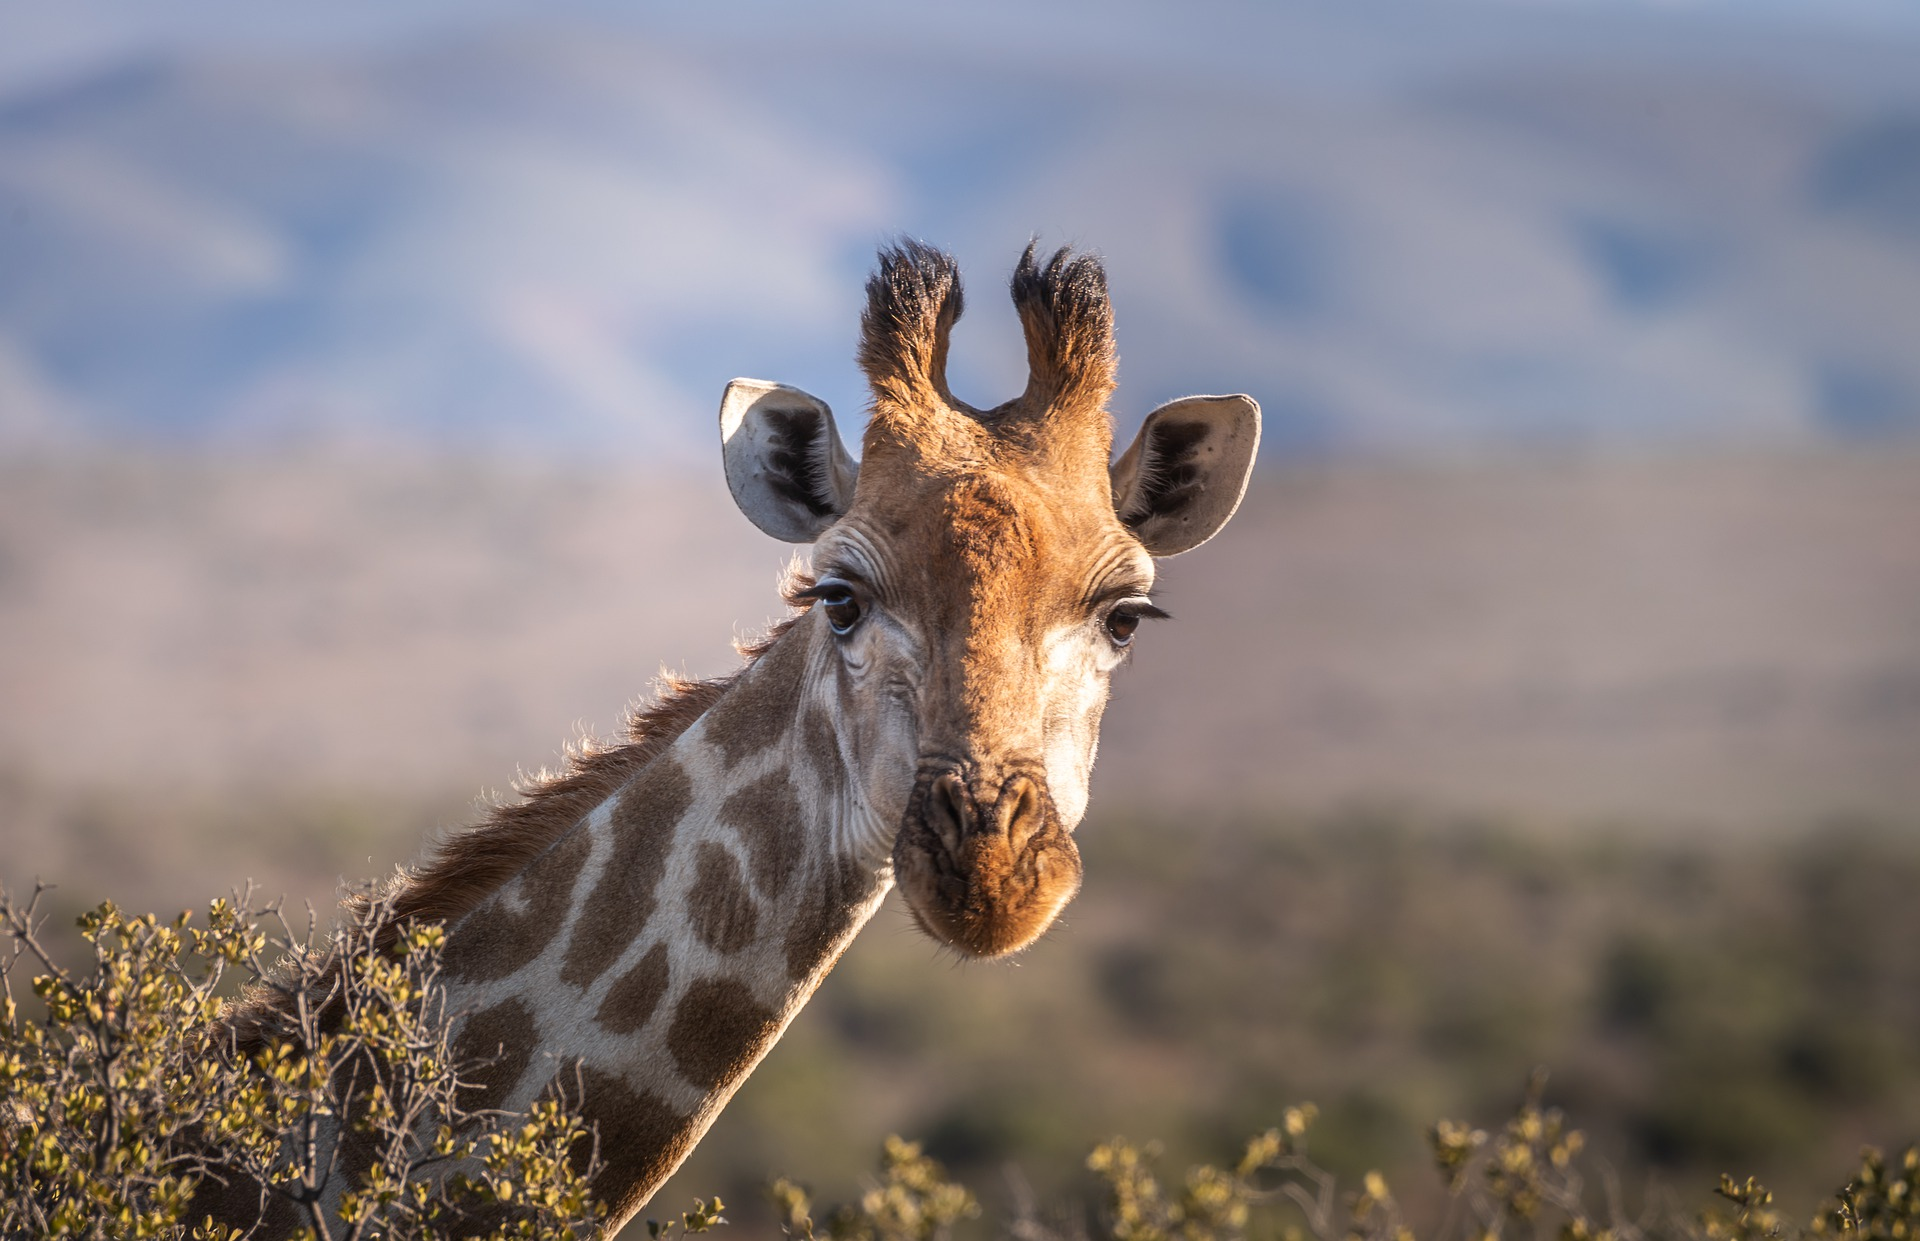 greater protection for giraffes from poachers